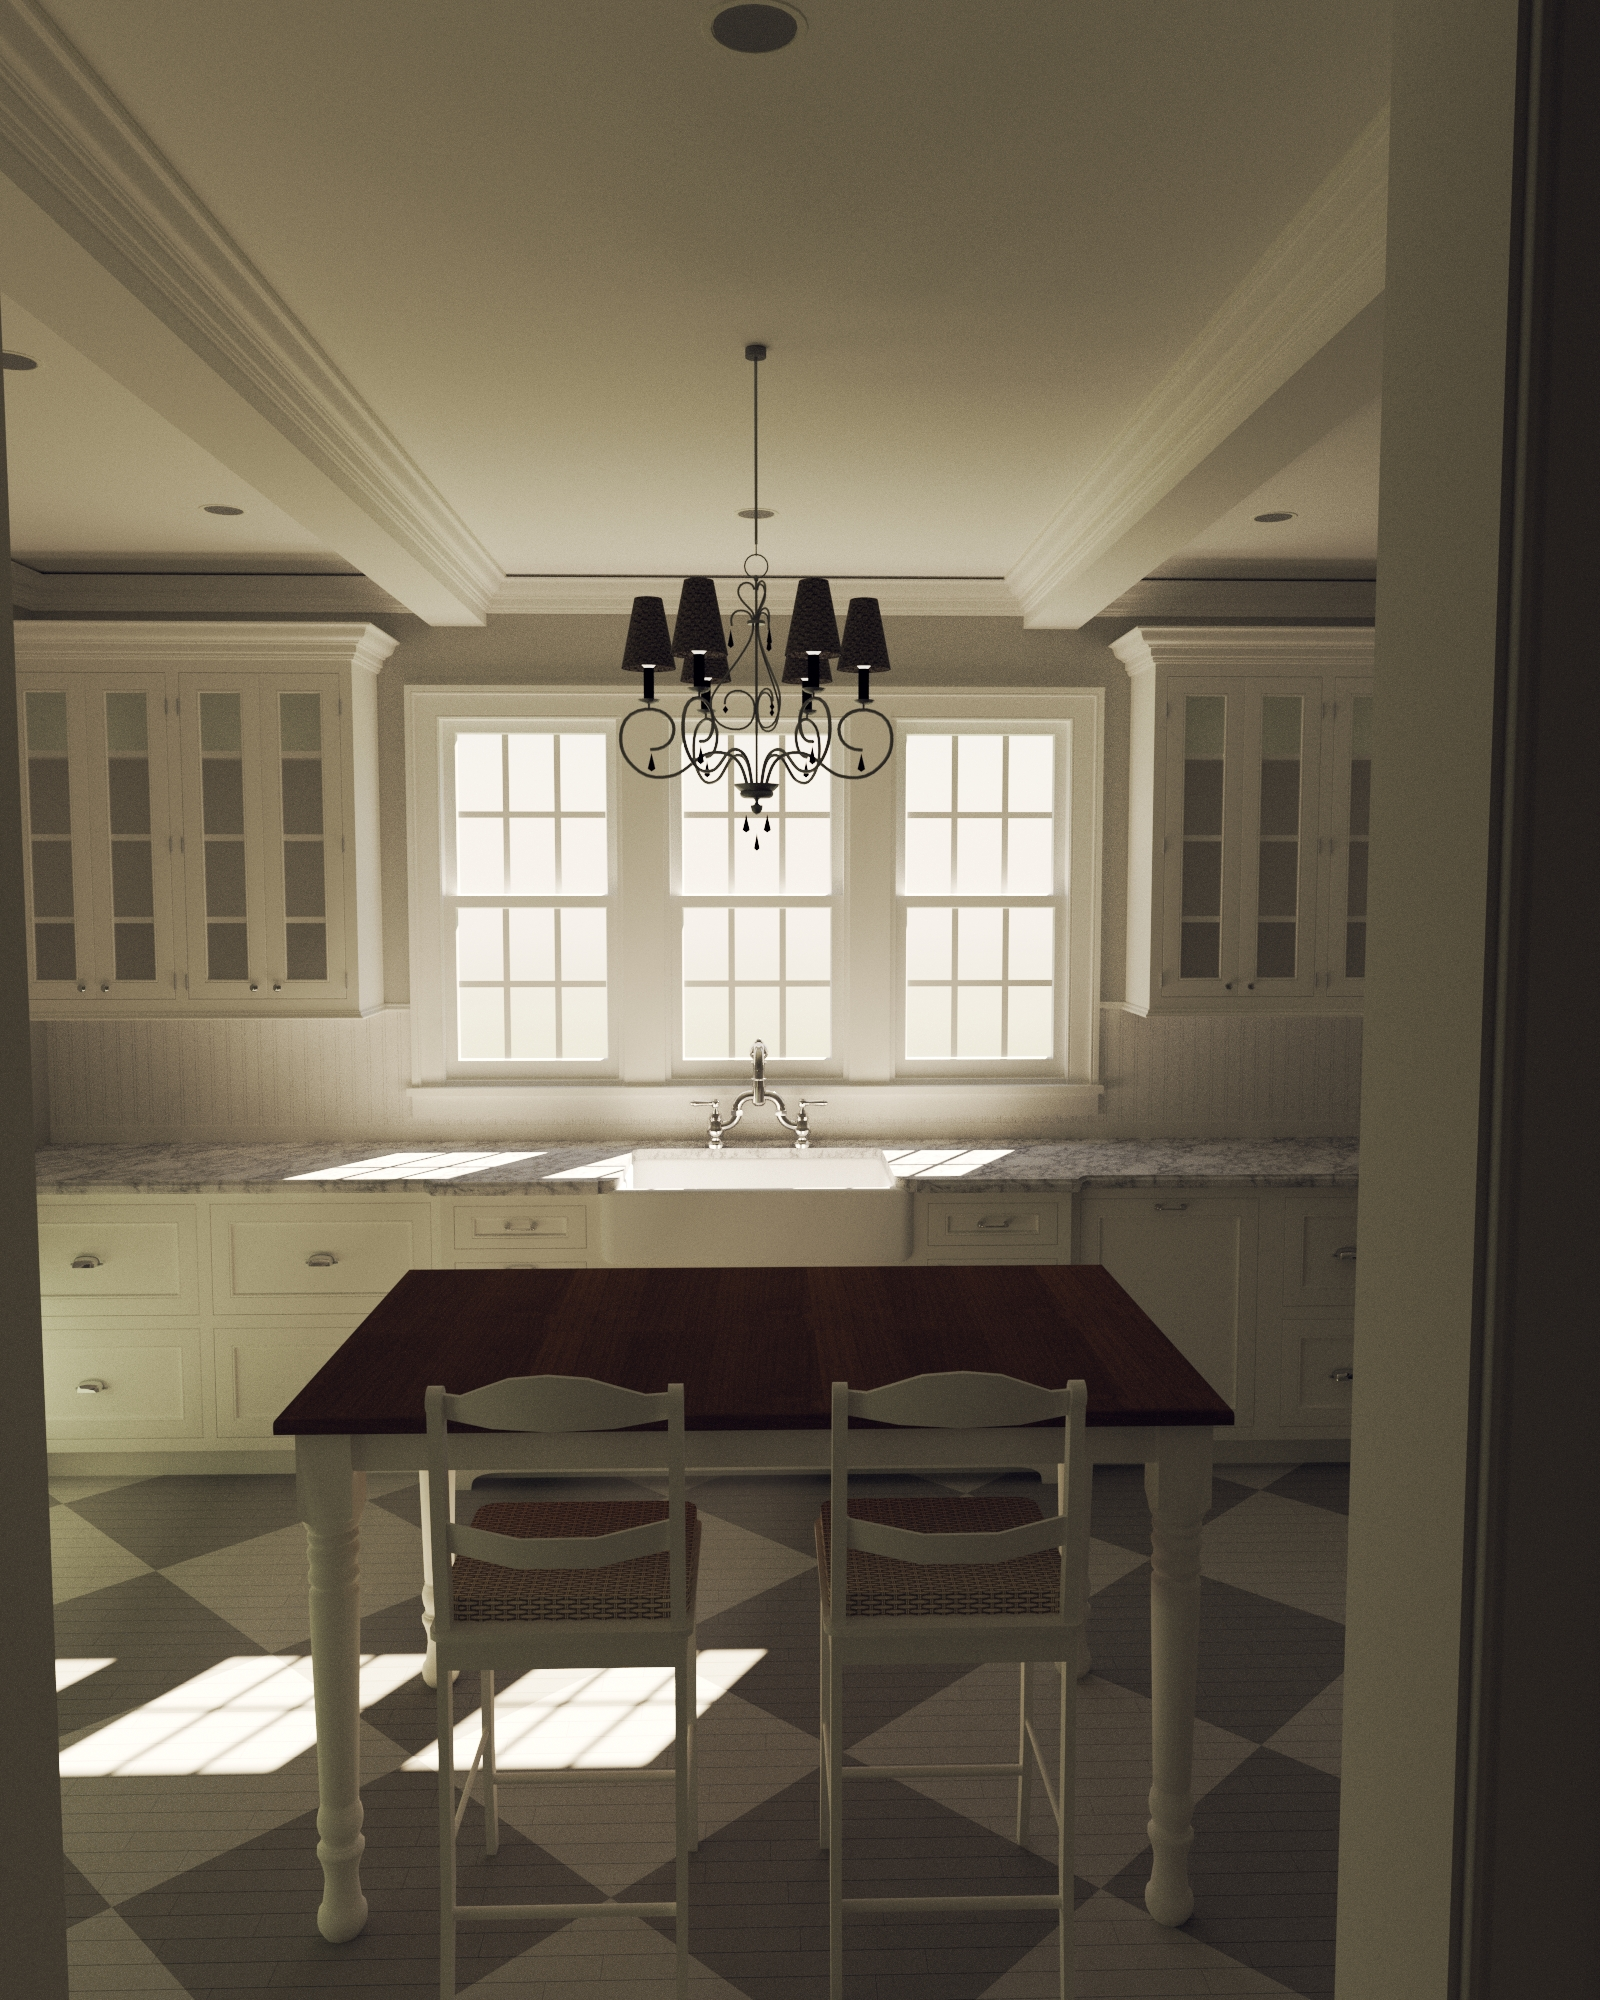 2019-02-01 Blog post- VA kitchen rendering.jpg